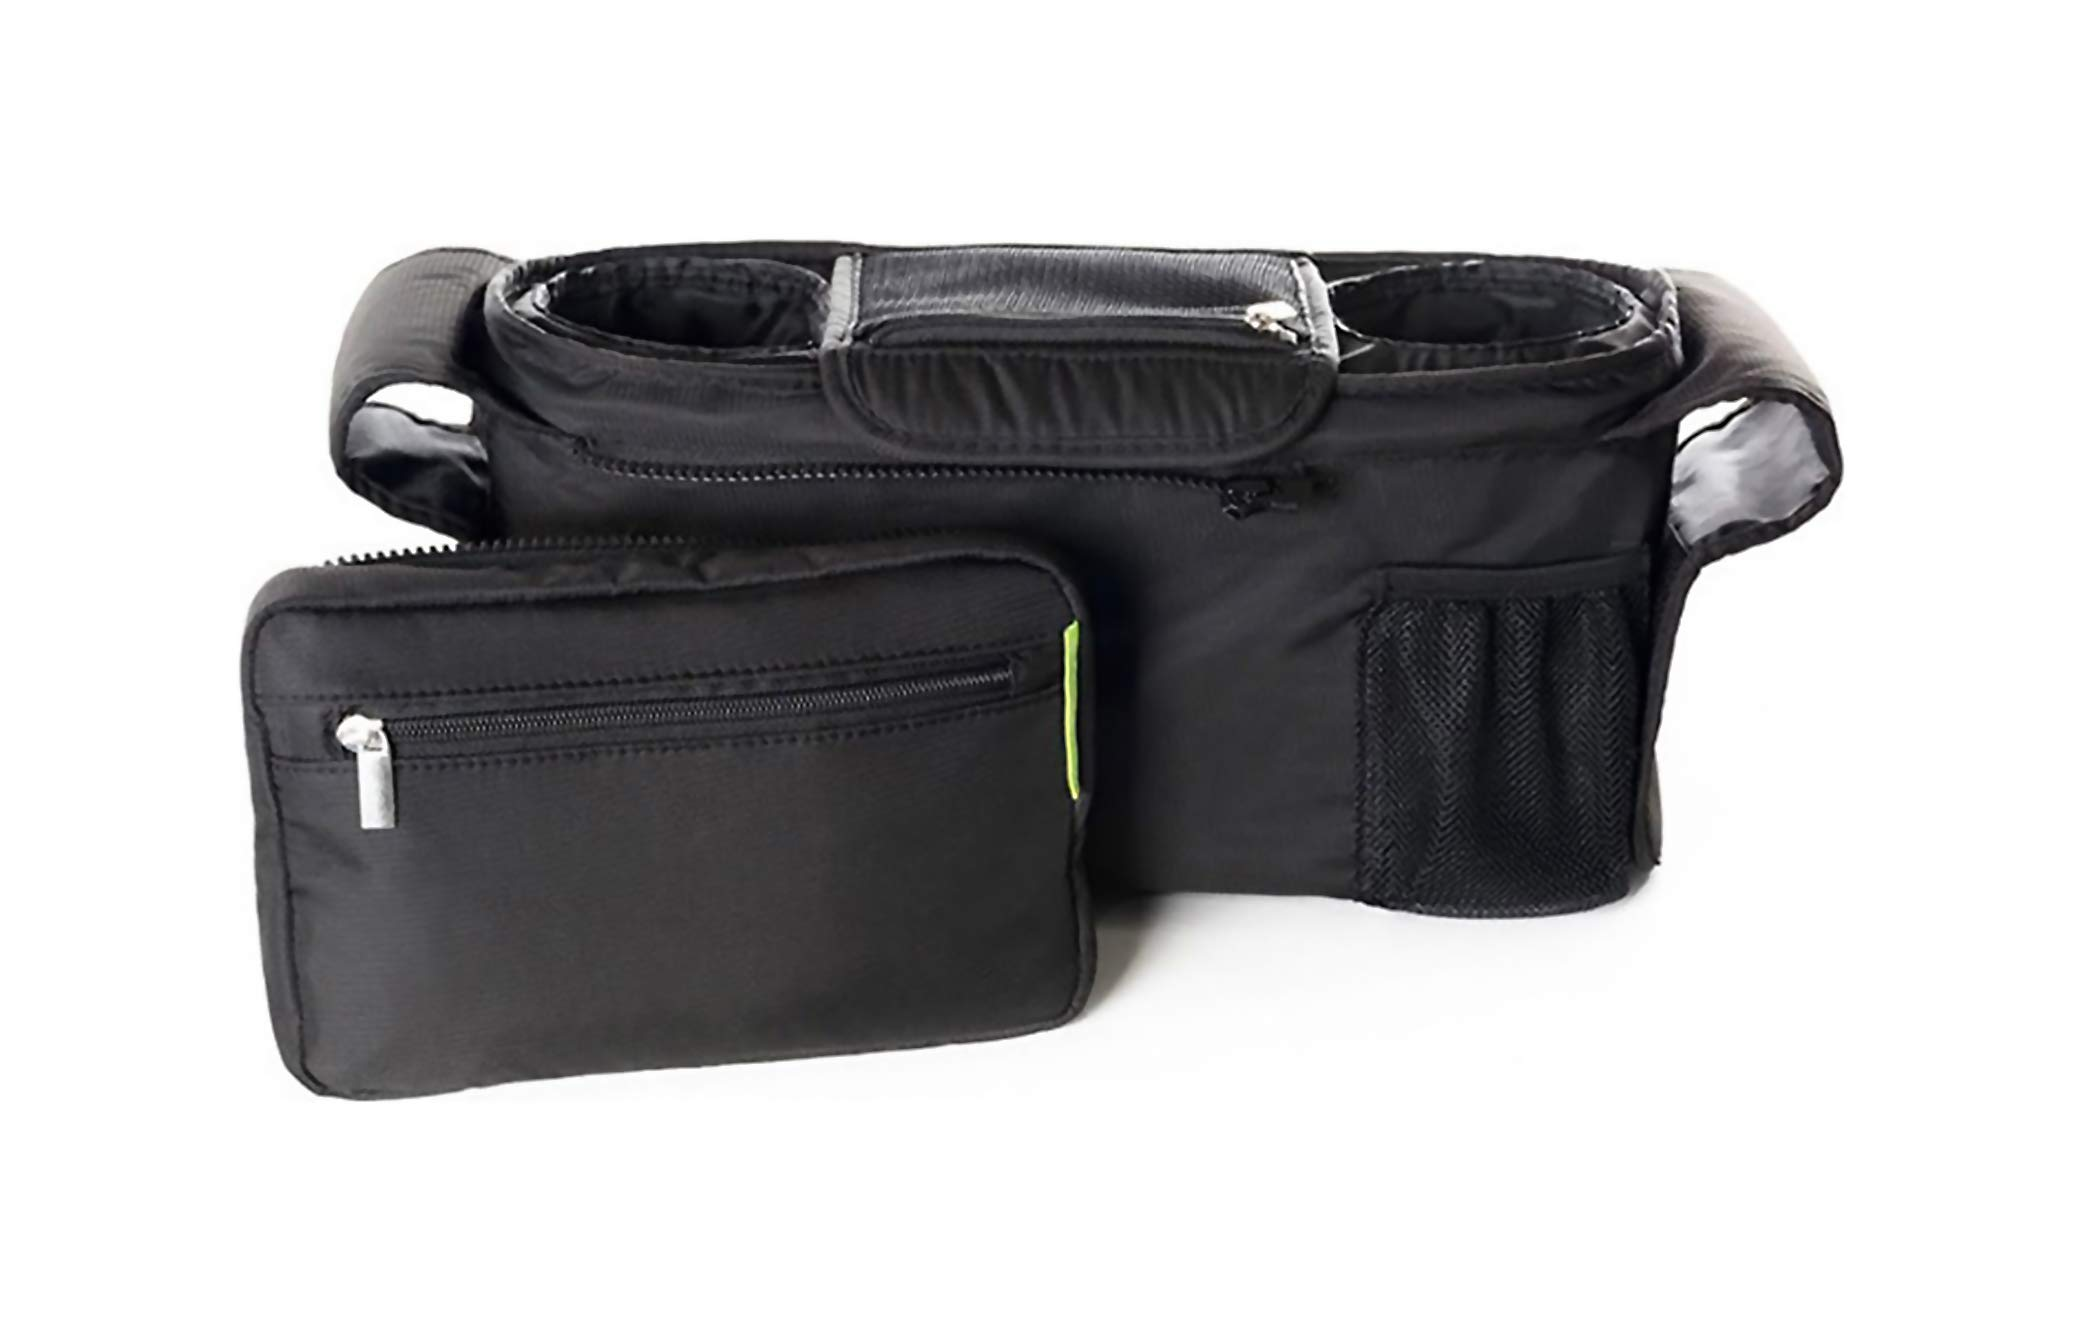 Stroller Organizer by RedCommerce|Organizer Bag for Baby Stroller,Good for Travel with Deep Cup Holder,Extra Large Space for Diapers